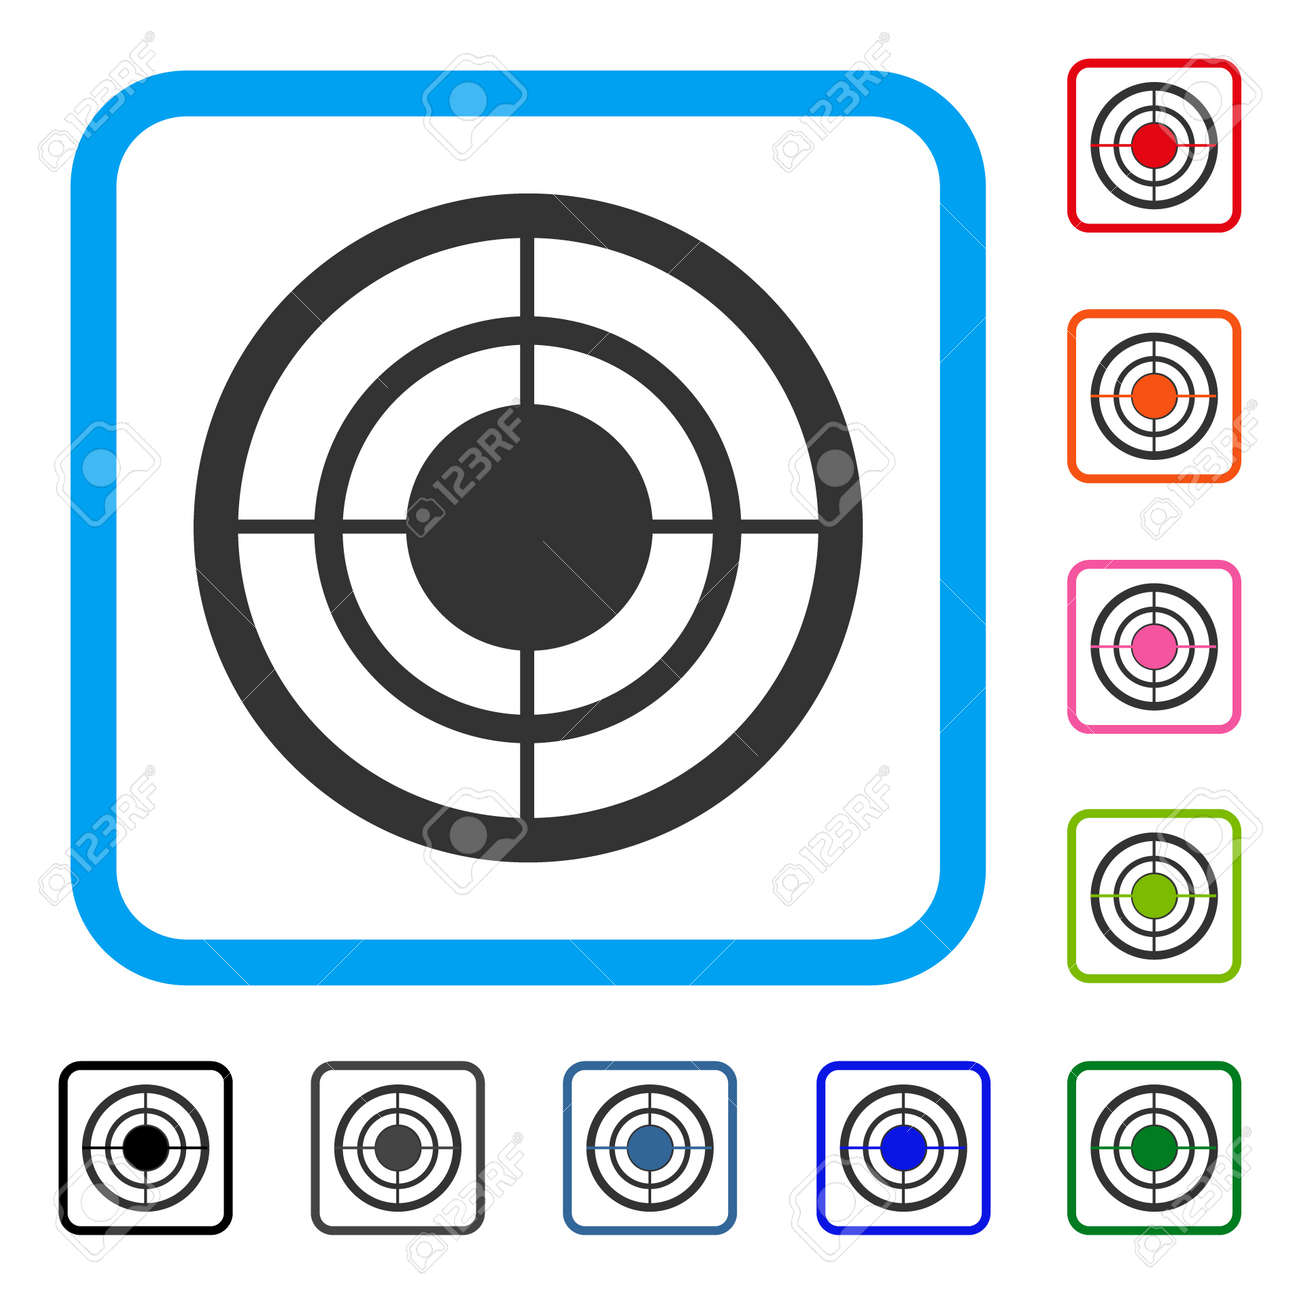 72c8bf11b370 Target icon. Flat gray iconic symbol in a light blue rounded squared frame.  Black